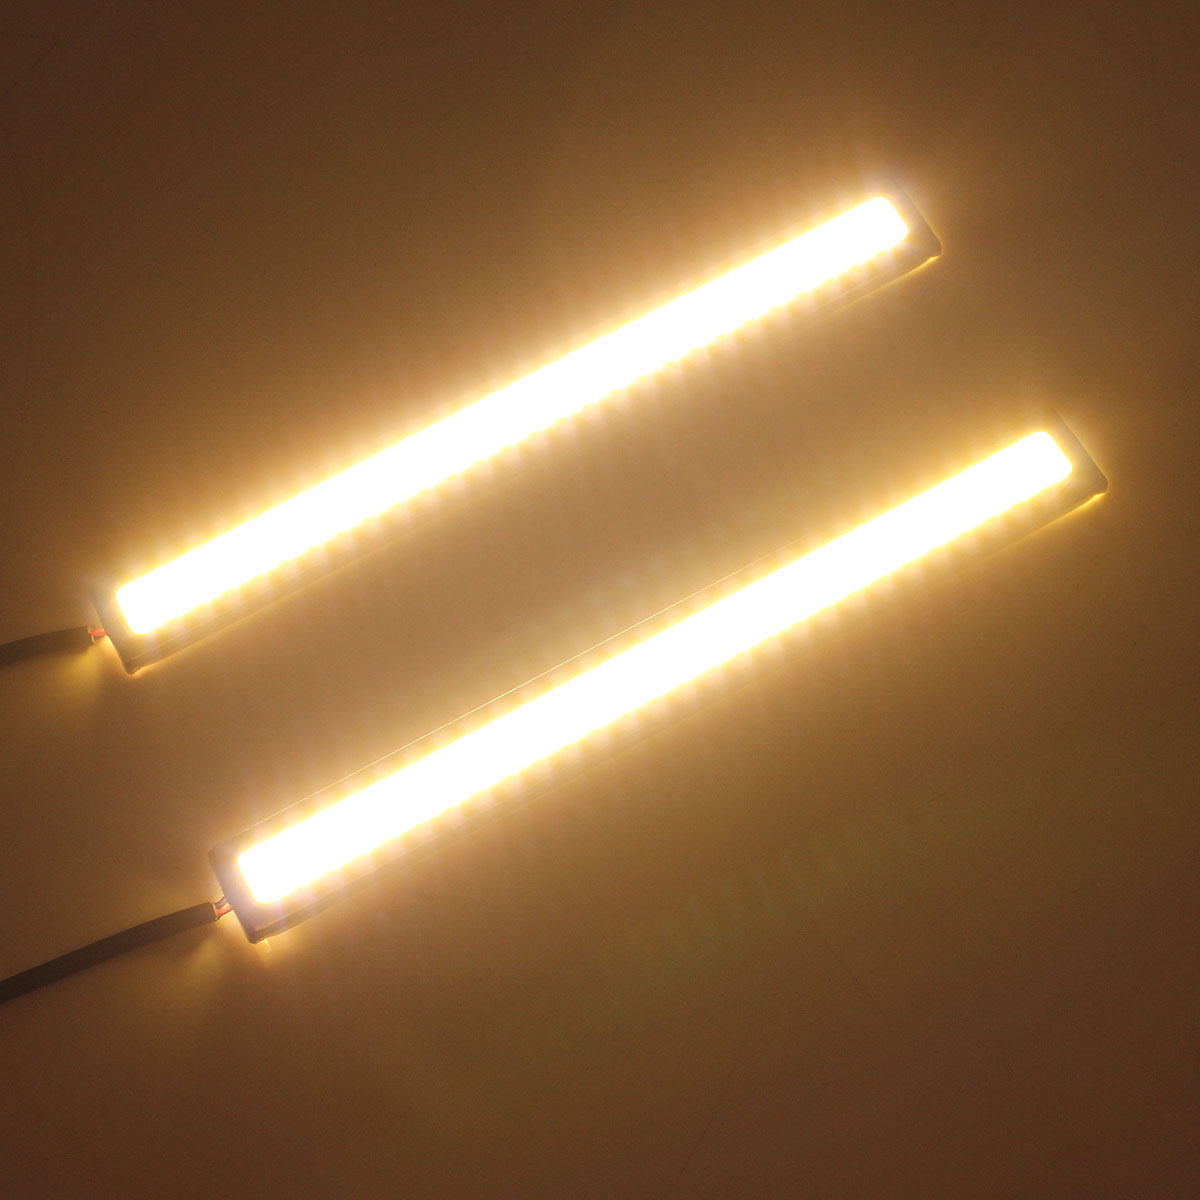 14cm COB LED Daytime Running Lights DRL Strip Lamp Waterproof 12V 8W 500LM 2PCS Universal